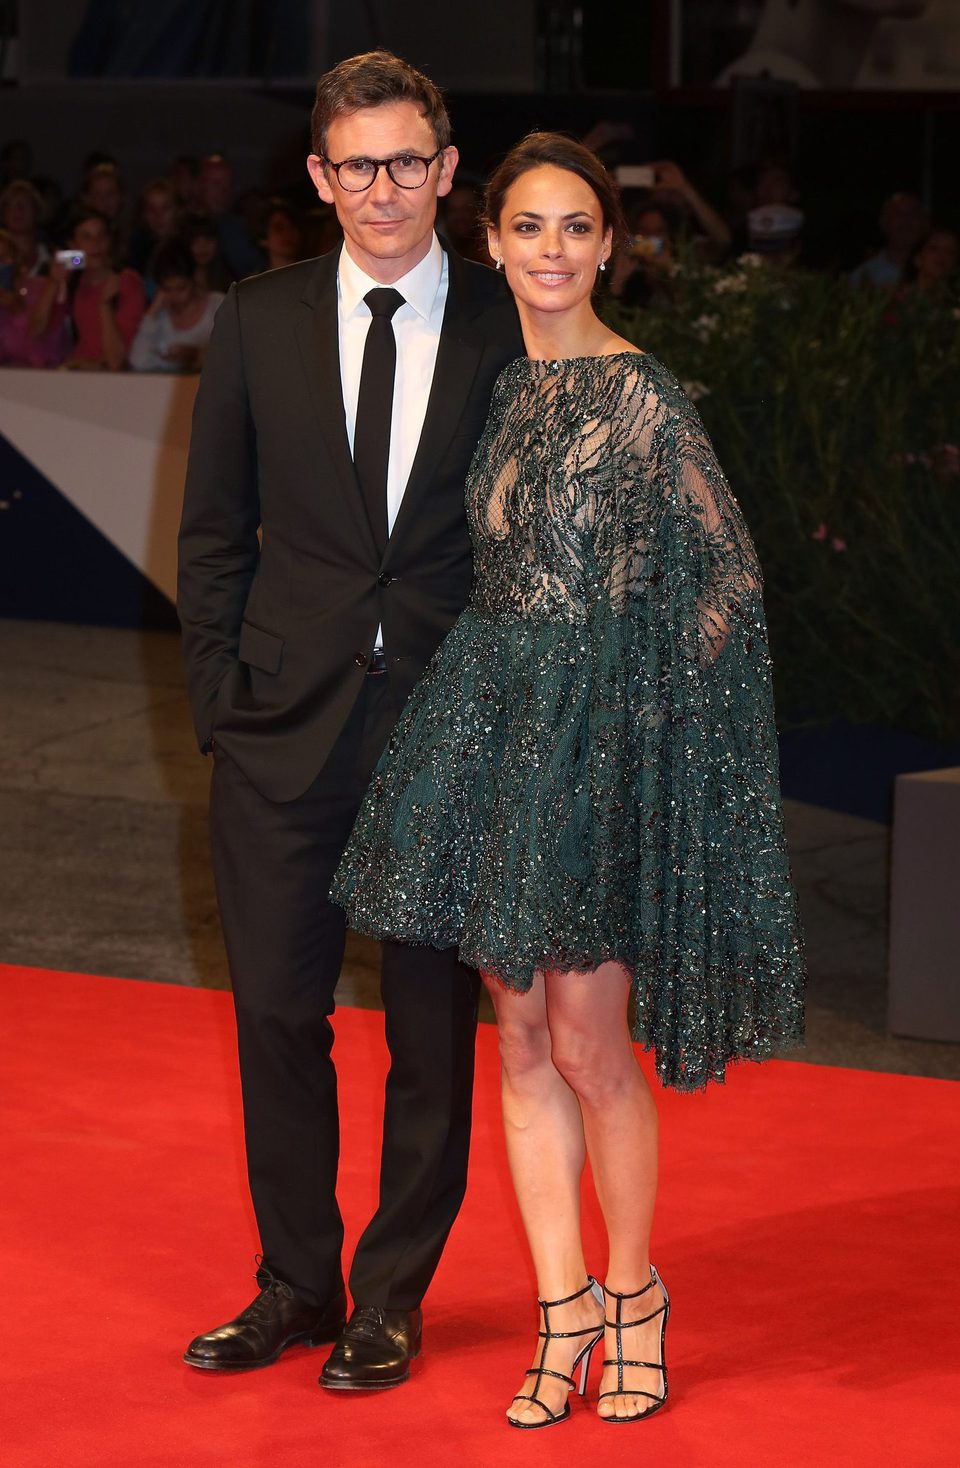 Michel Hazanavicius and Bérénice Bejo at the 72nd Venice Film Festival